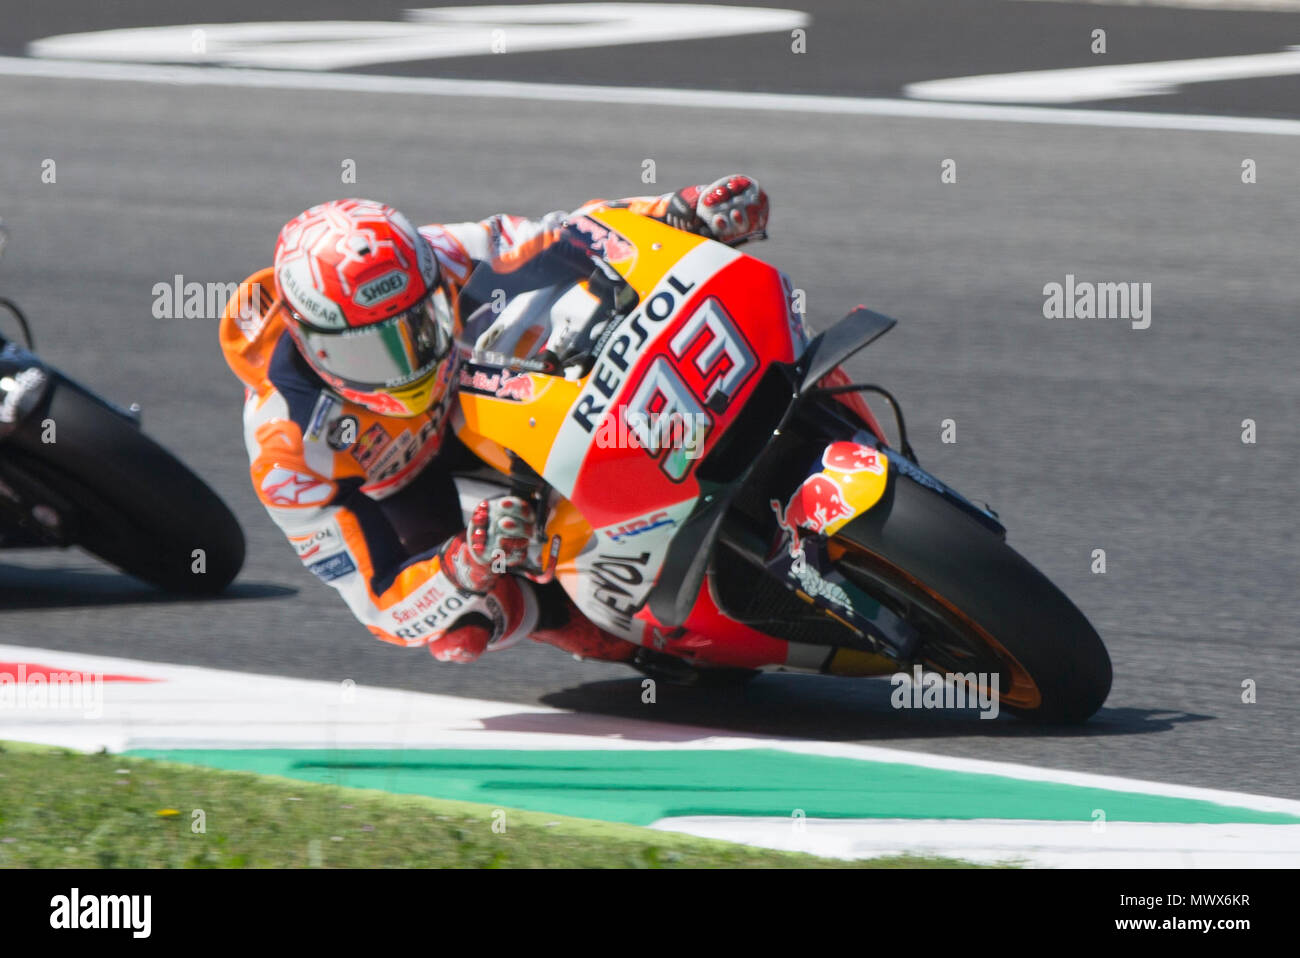 7fc1d21c52 ... Qualifications at the Mugello International Cuircuit for the sixth  round of MotoGP World Championship Gran Premio ...